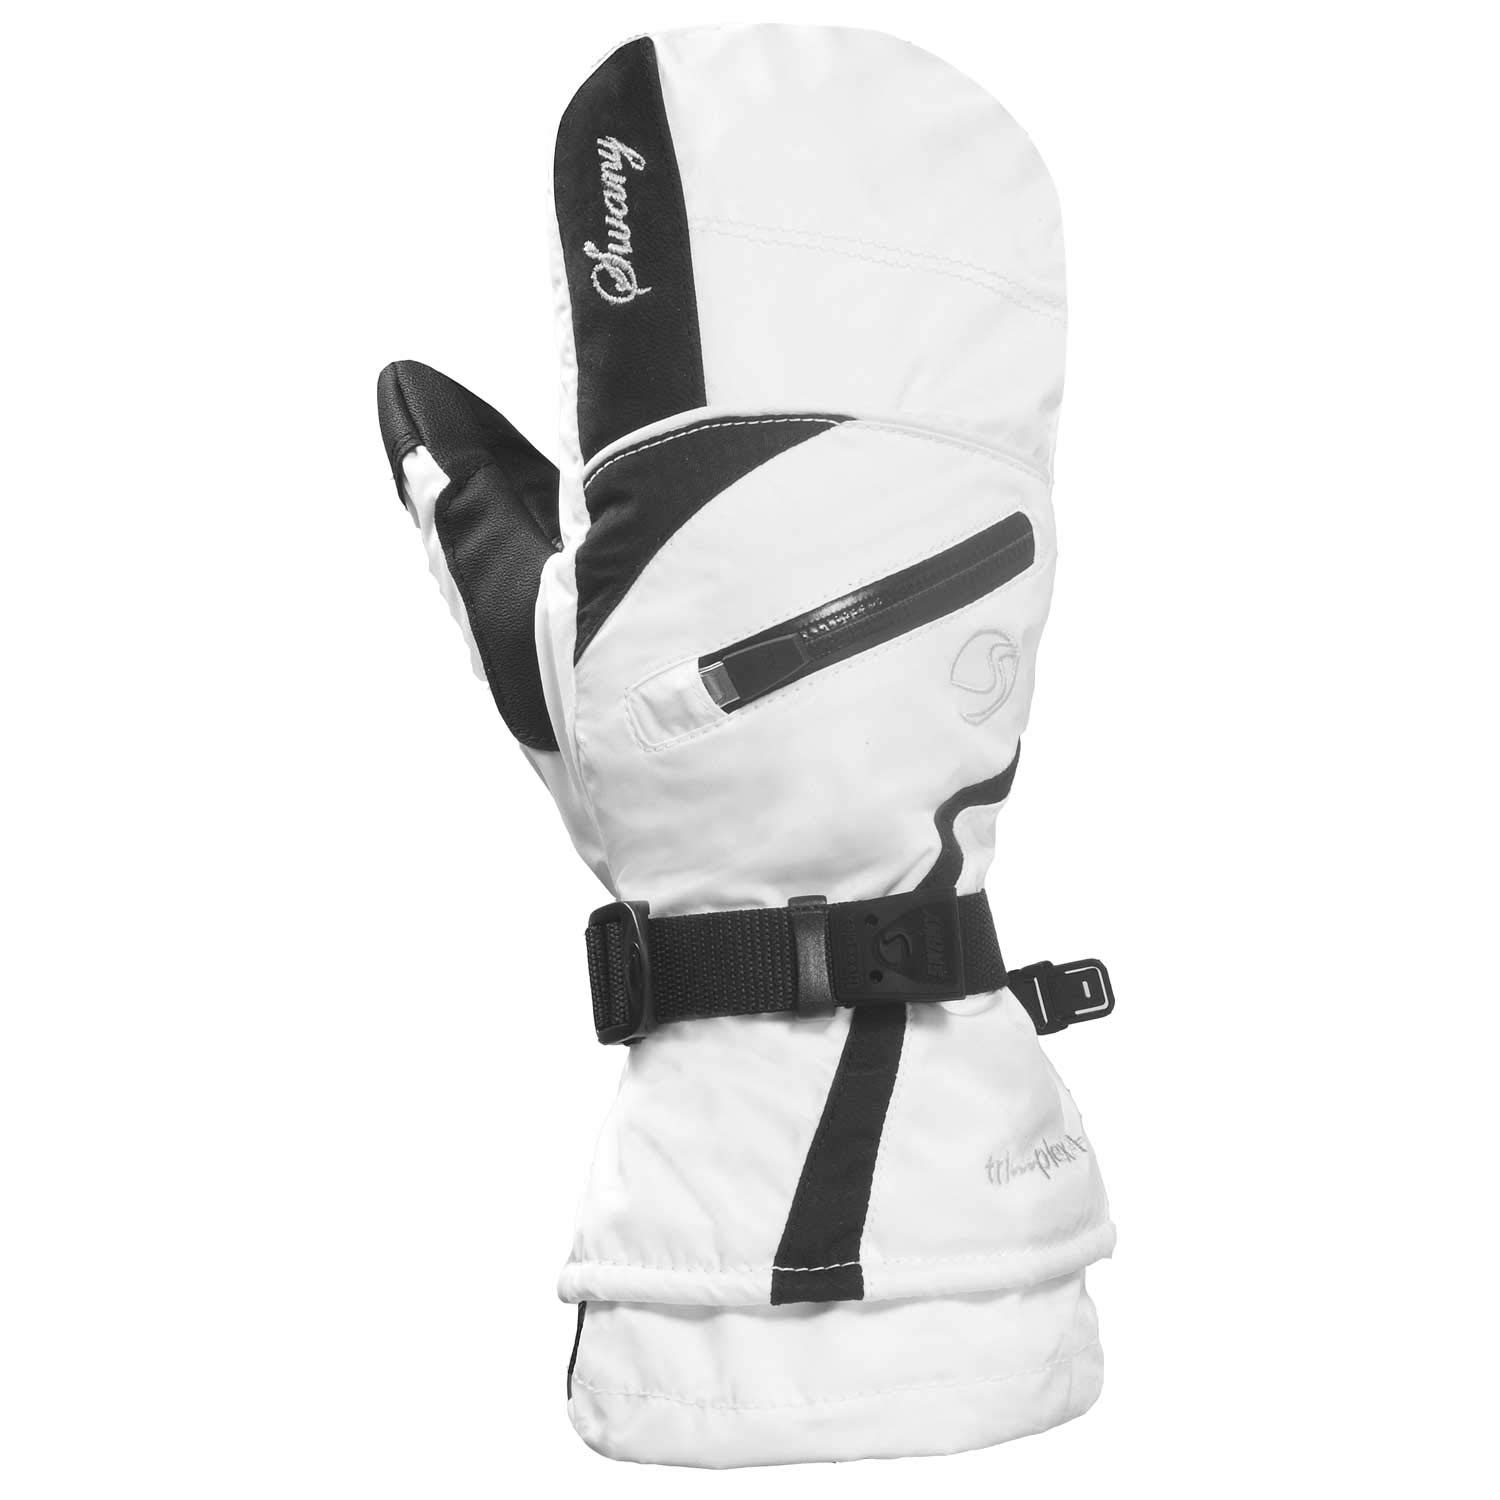 Swany Womens X-Therm Warm Insulated Mitten, White/Black, Large